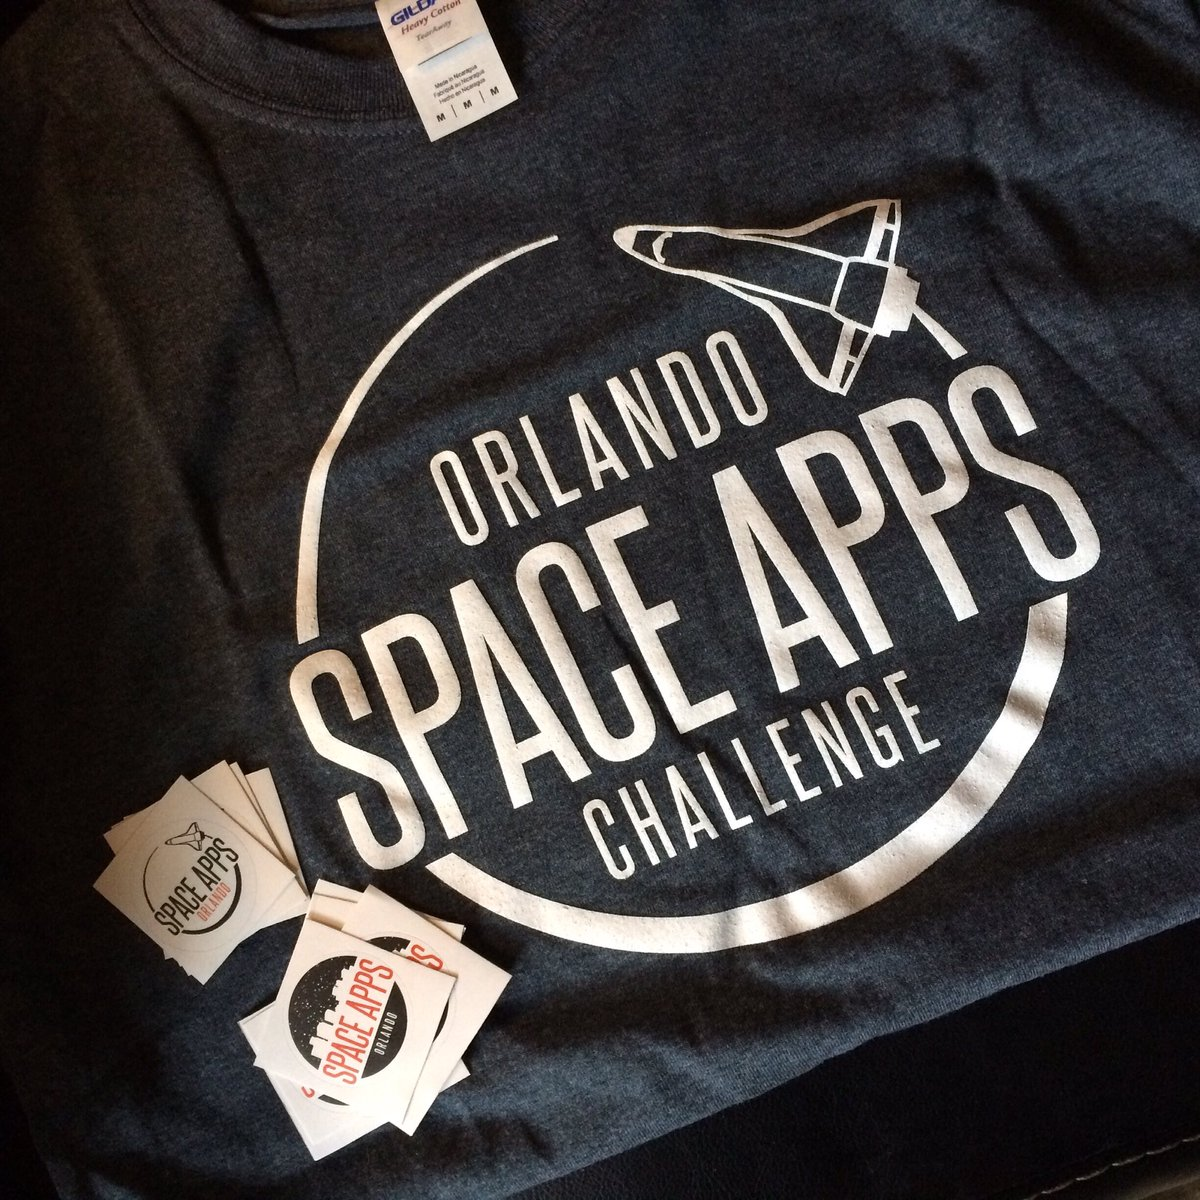 Just got a swag bag of T shirt and stickers of the logo I designed for @SpaceAppsORL thank you @qui_valere_est !! 😄 https://t.co/Exlqmn3IMd